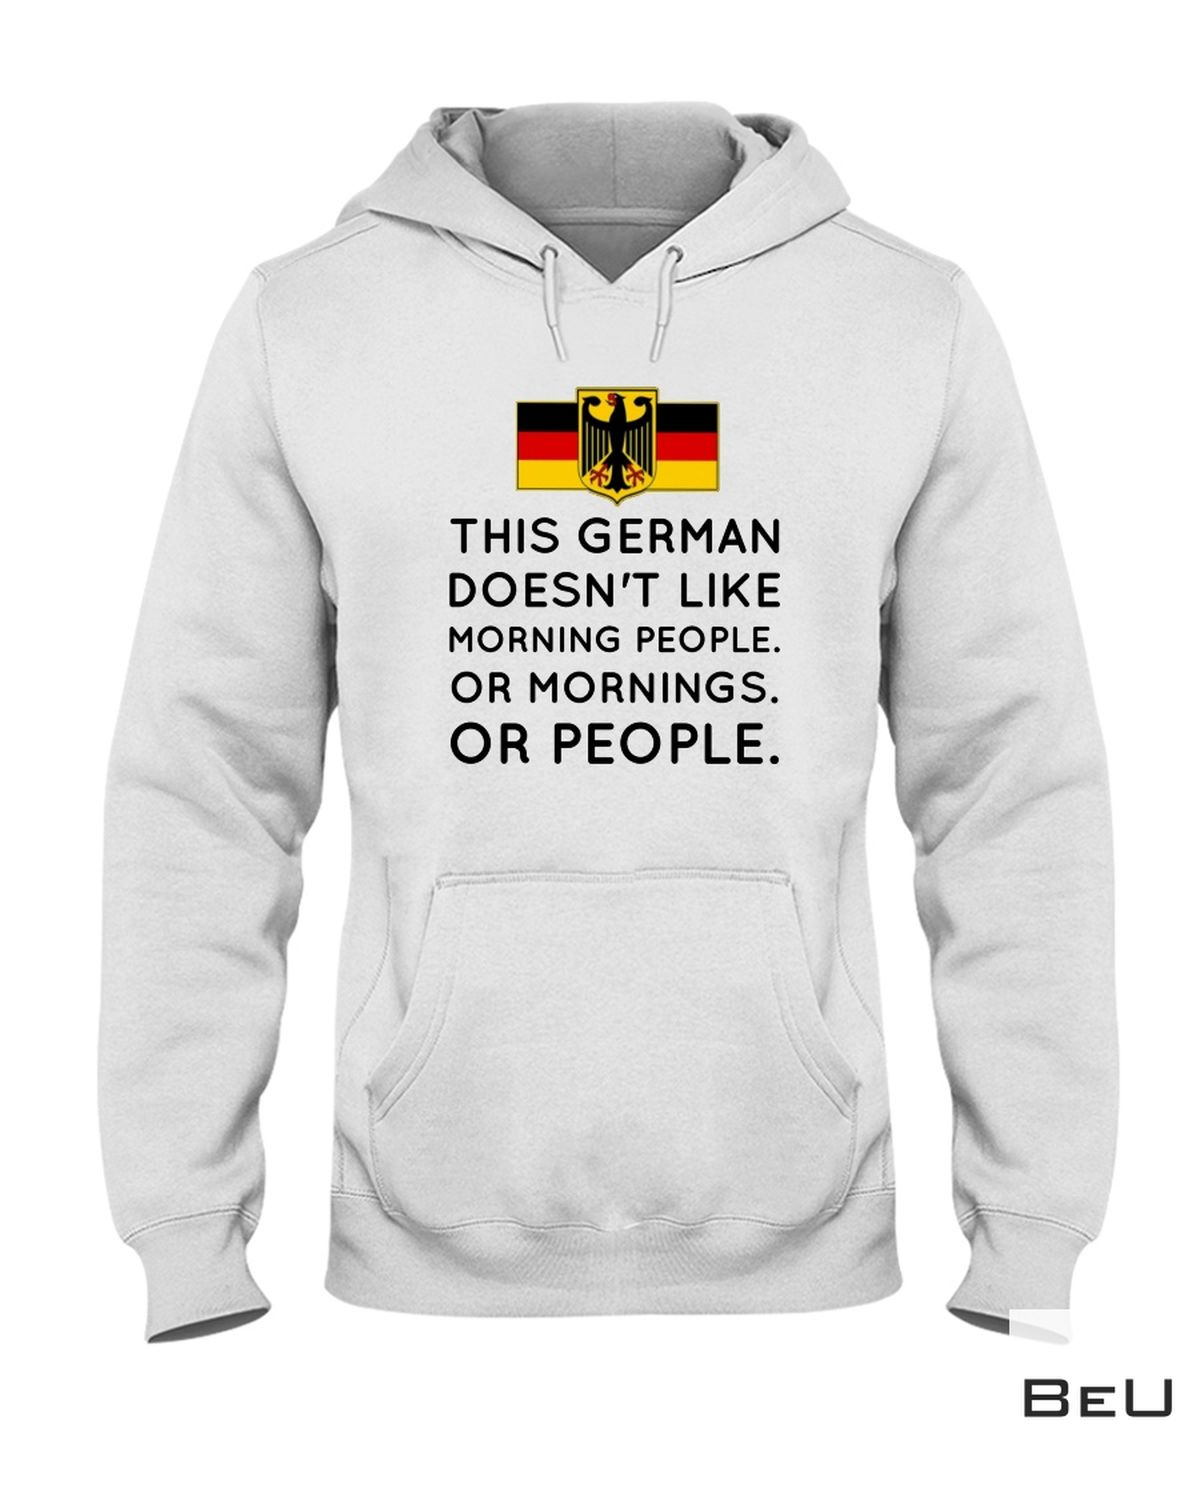 Excellent This German Doesn't Like Morning People Or Mornings Or People Shirt, hoodie, tank top